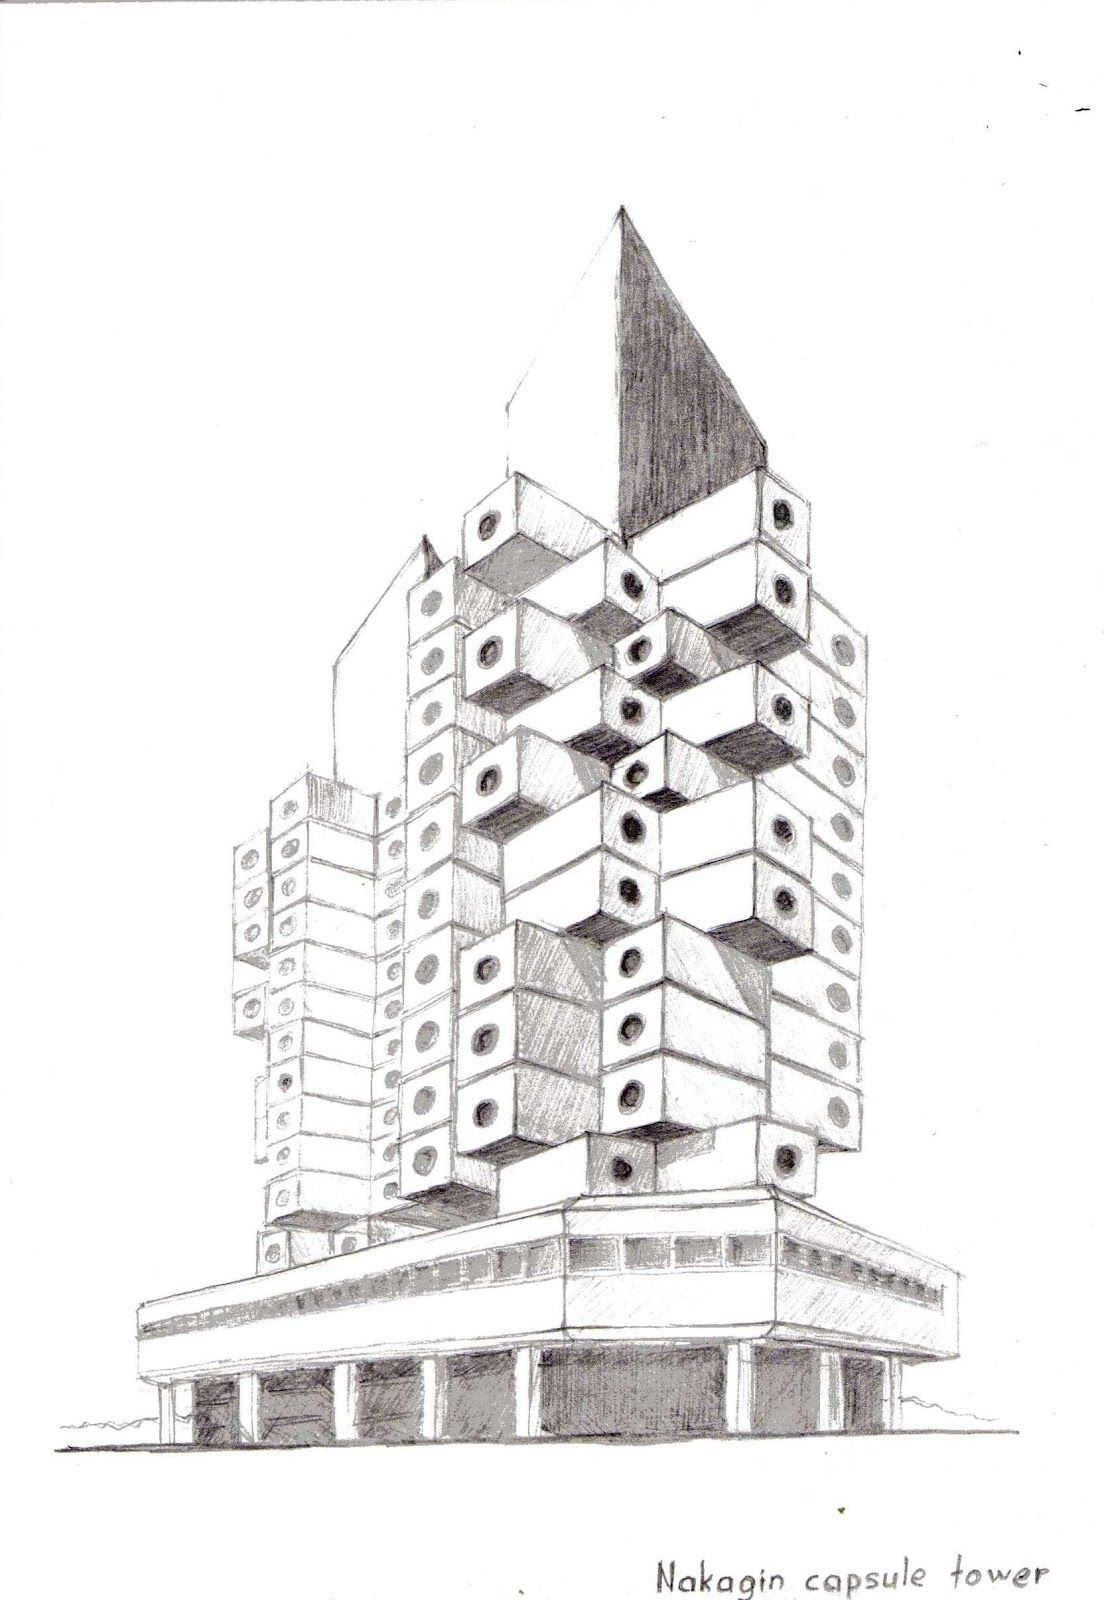 A 3d Sketch Of The Nakagin Capsule Tower Architect Kisho